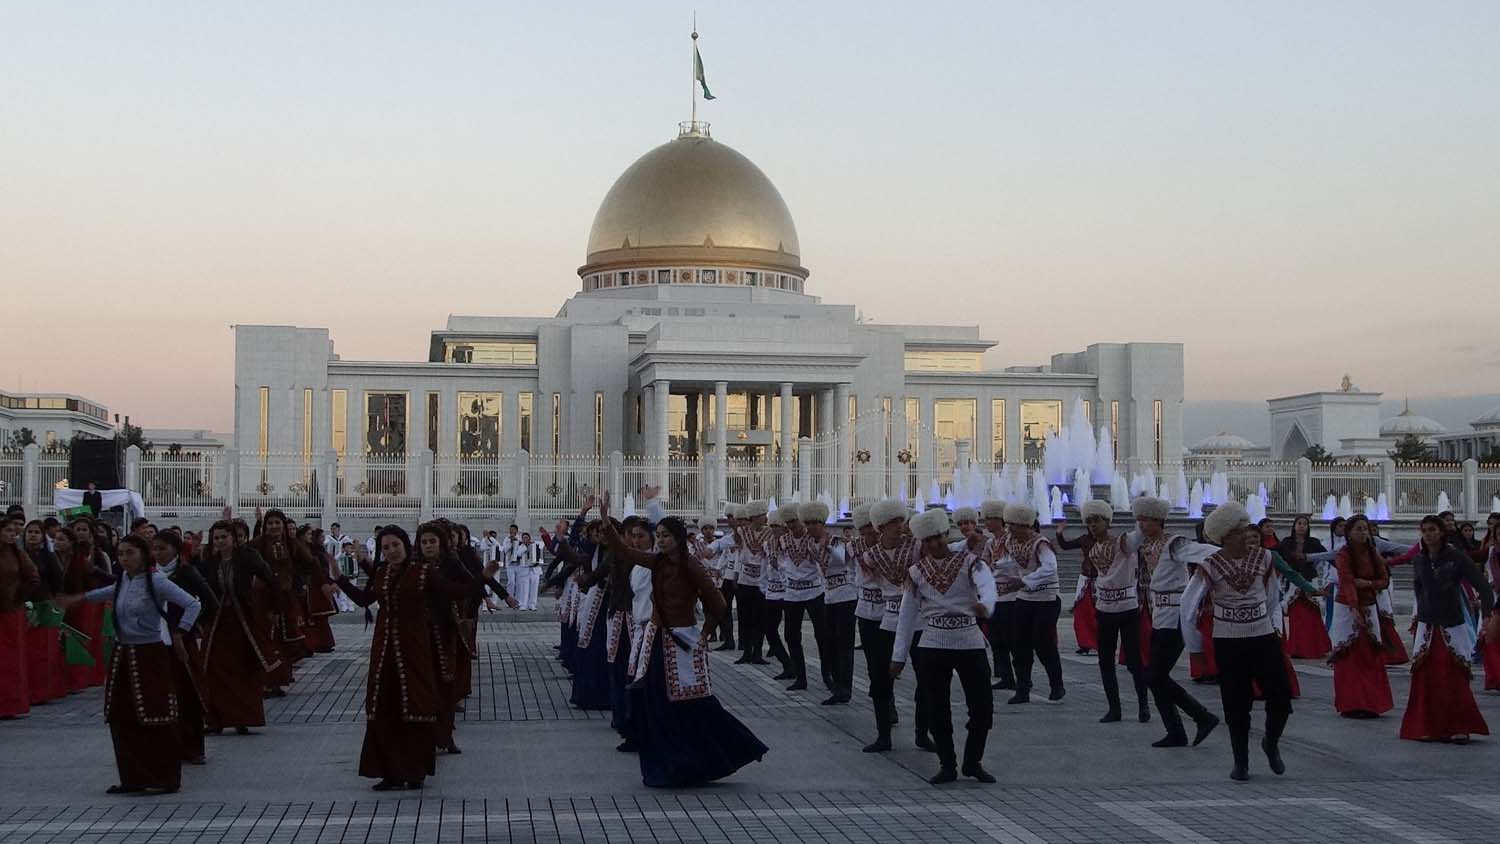 Turkmenistan independence day celebrations